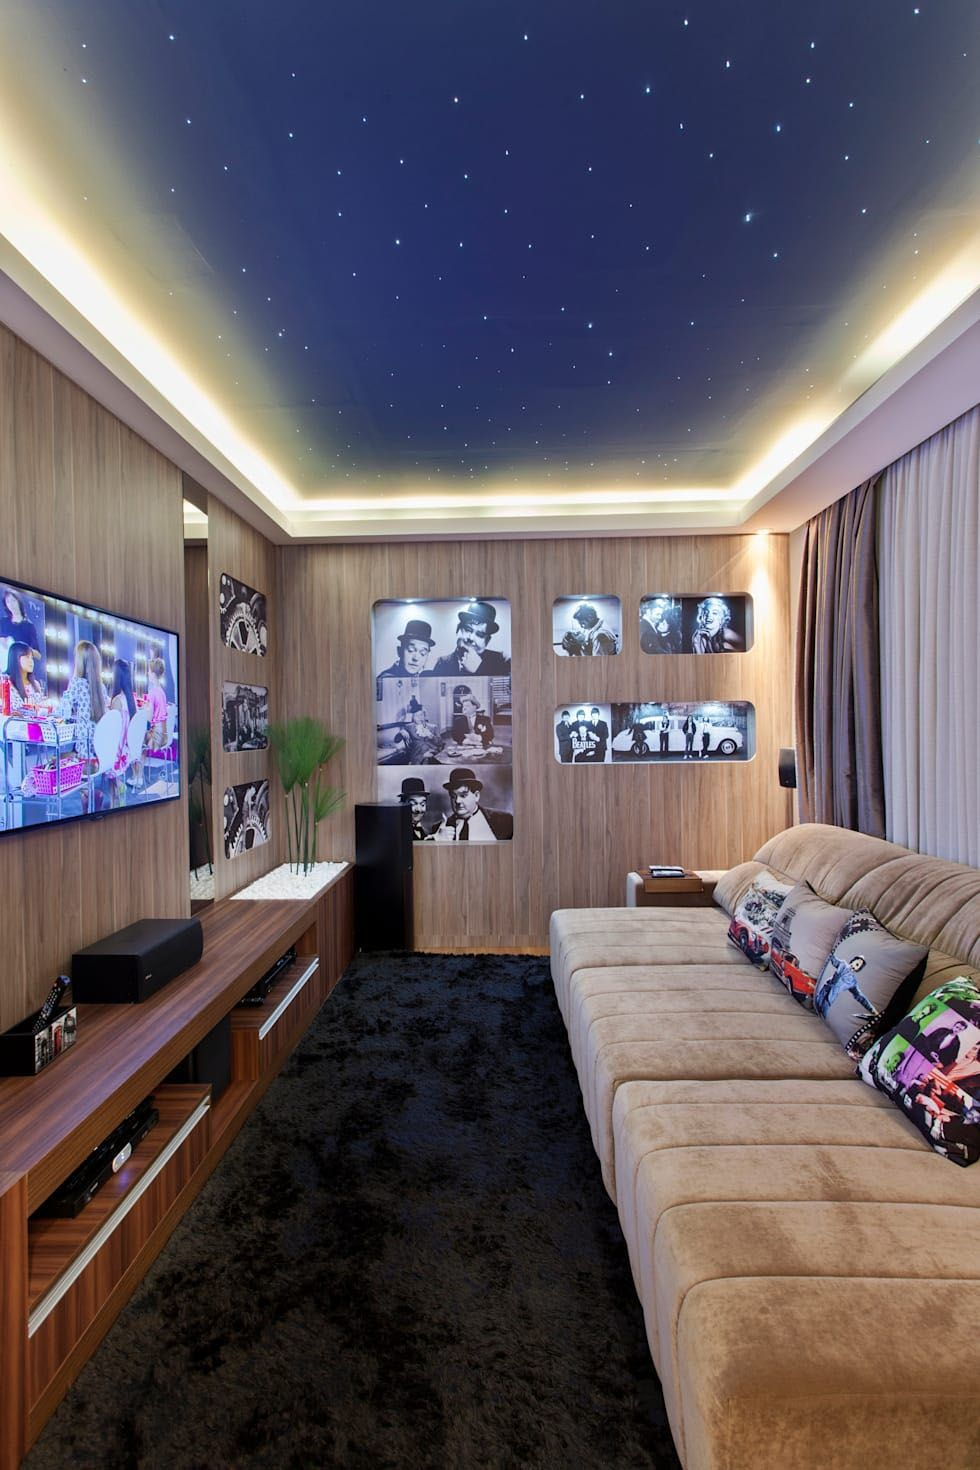 First Rate Living Room Theater In Boca Raton Fl Exclusive On Interioropedia Home Decor Home Cinema Room Living Room Theaters Home Theater Rooms